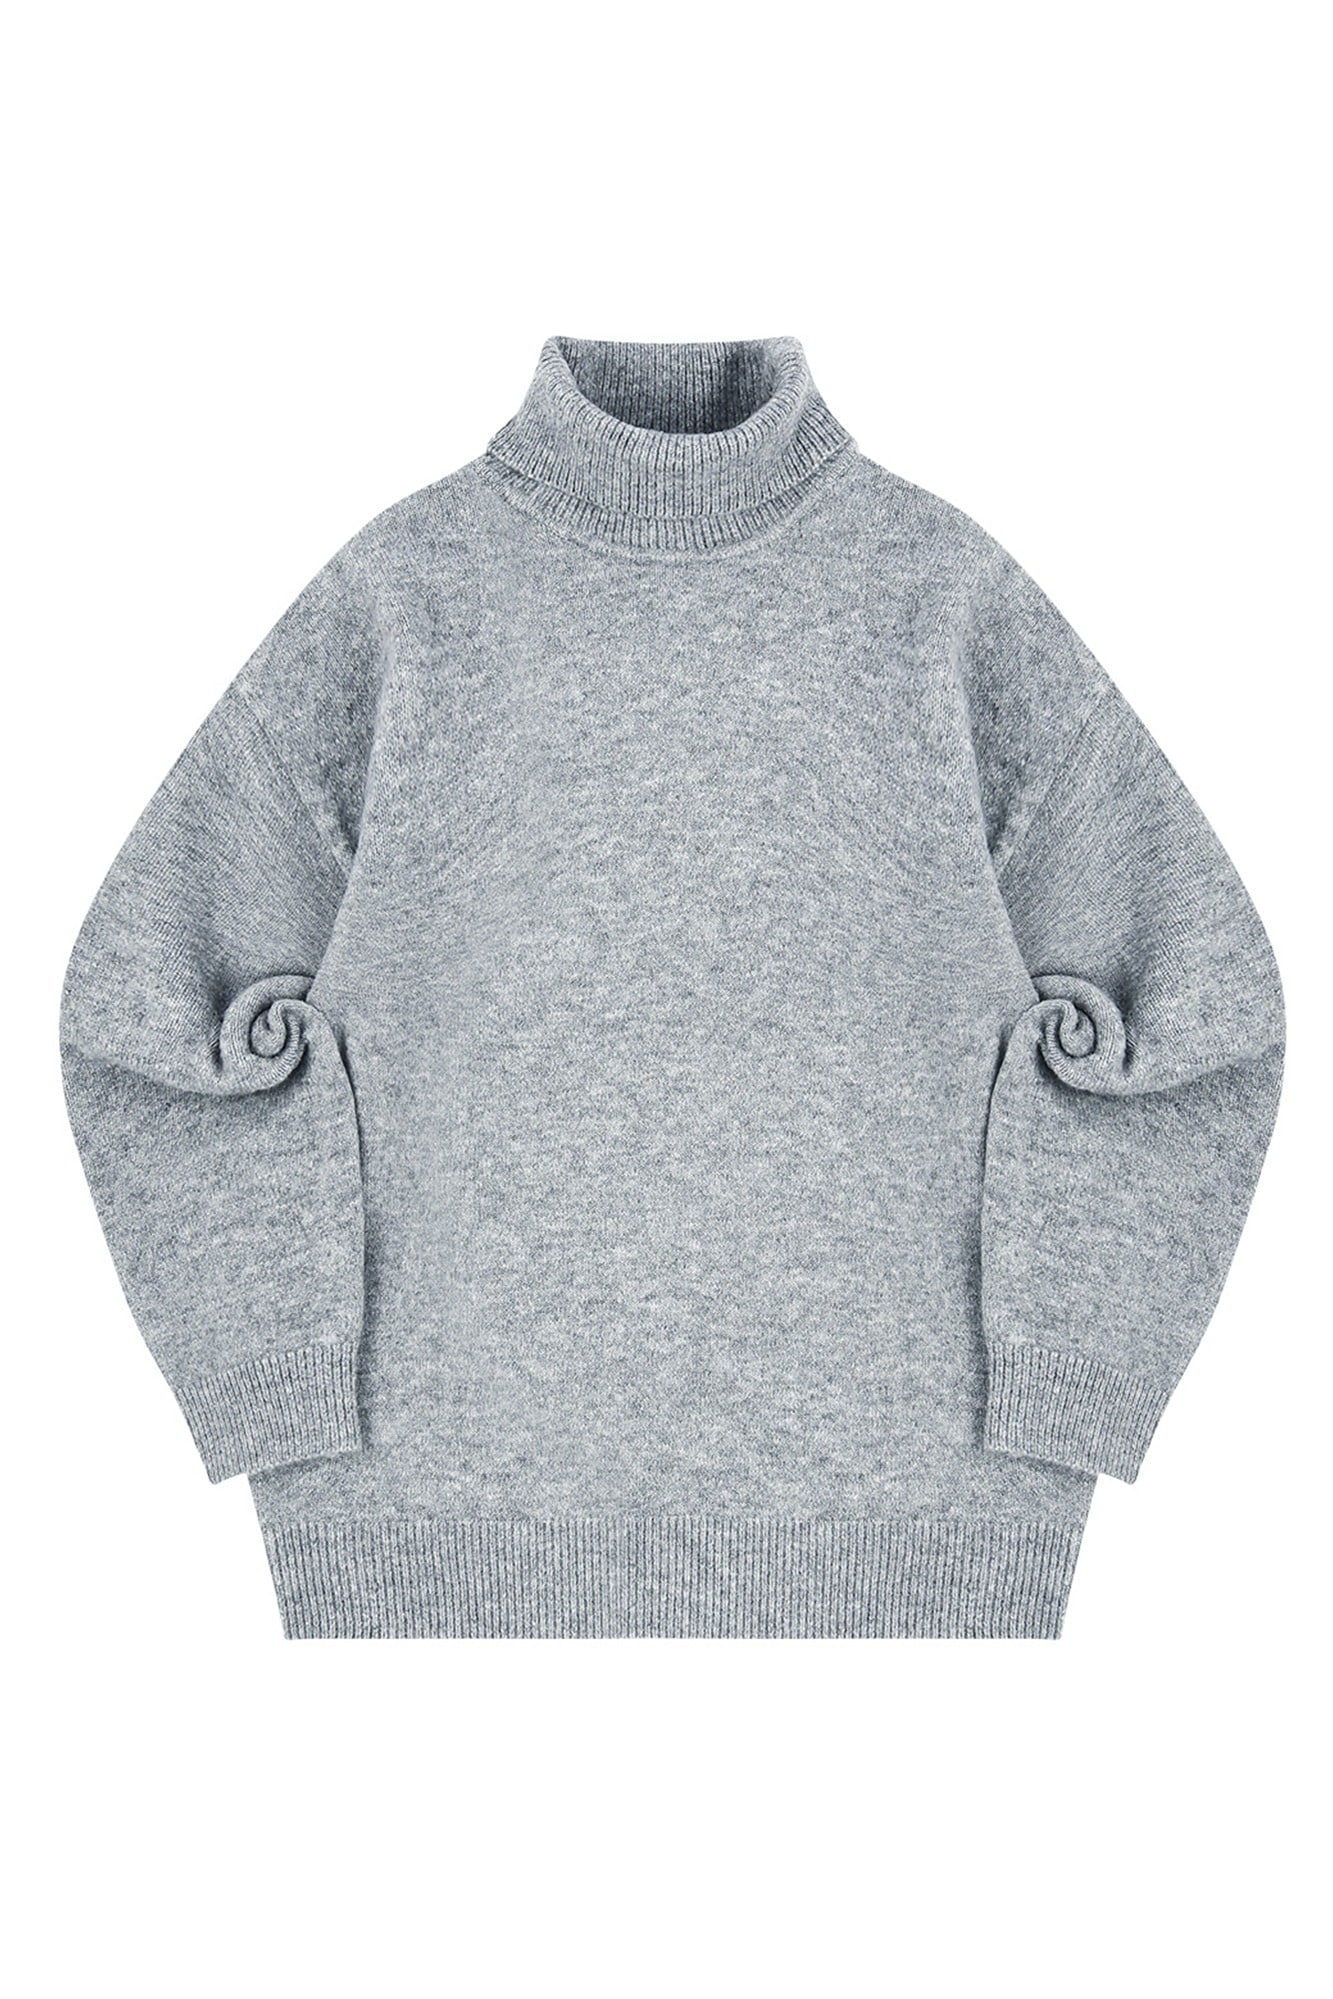 MELANGE TURTLE NECK SWEATER_GRAY